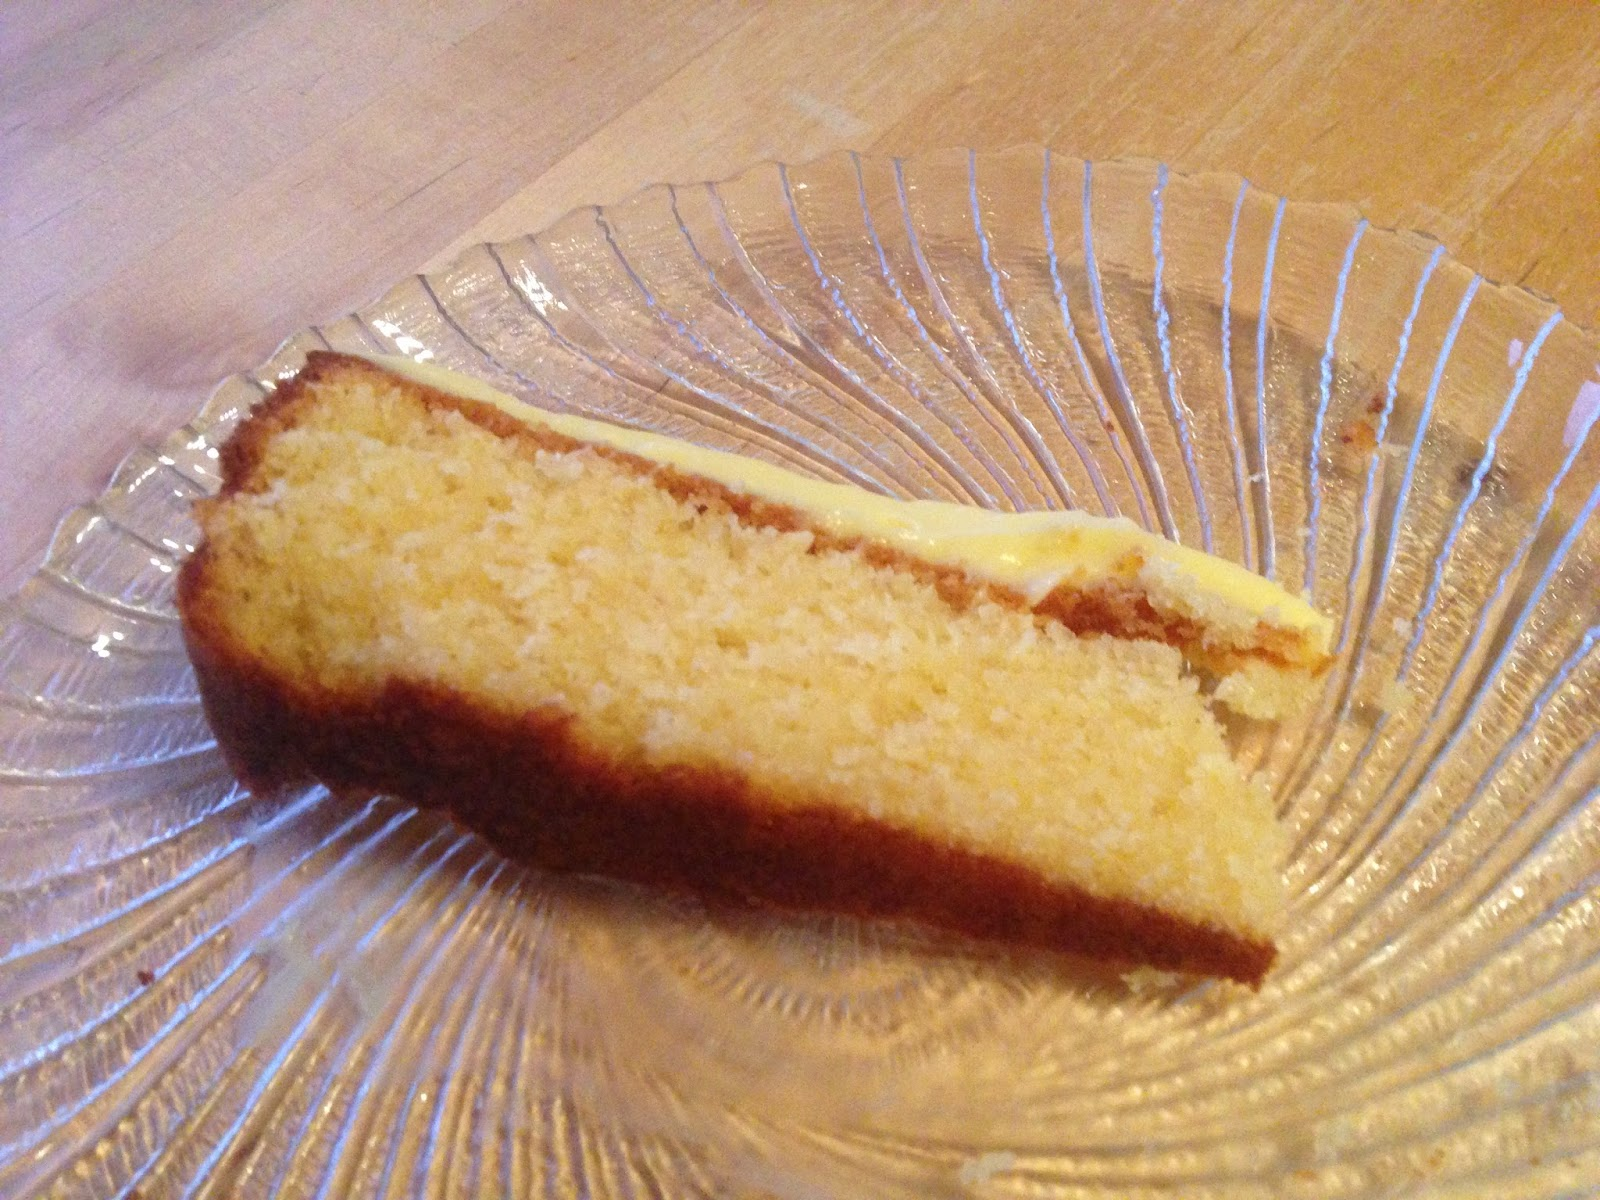 52 Cakes: Cake #11 - Lemon and Almond Streamliner Cake